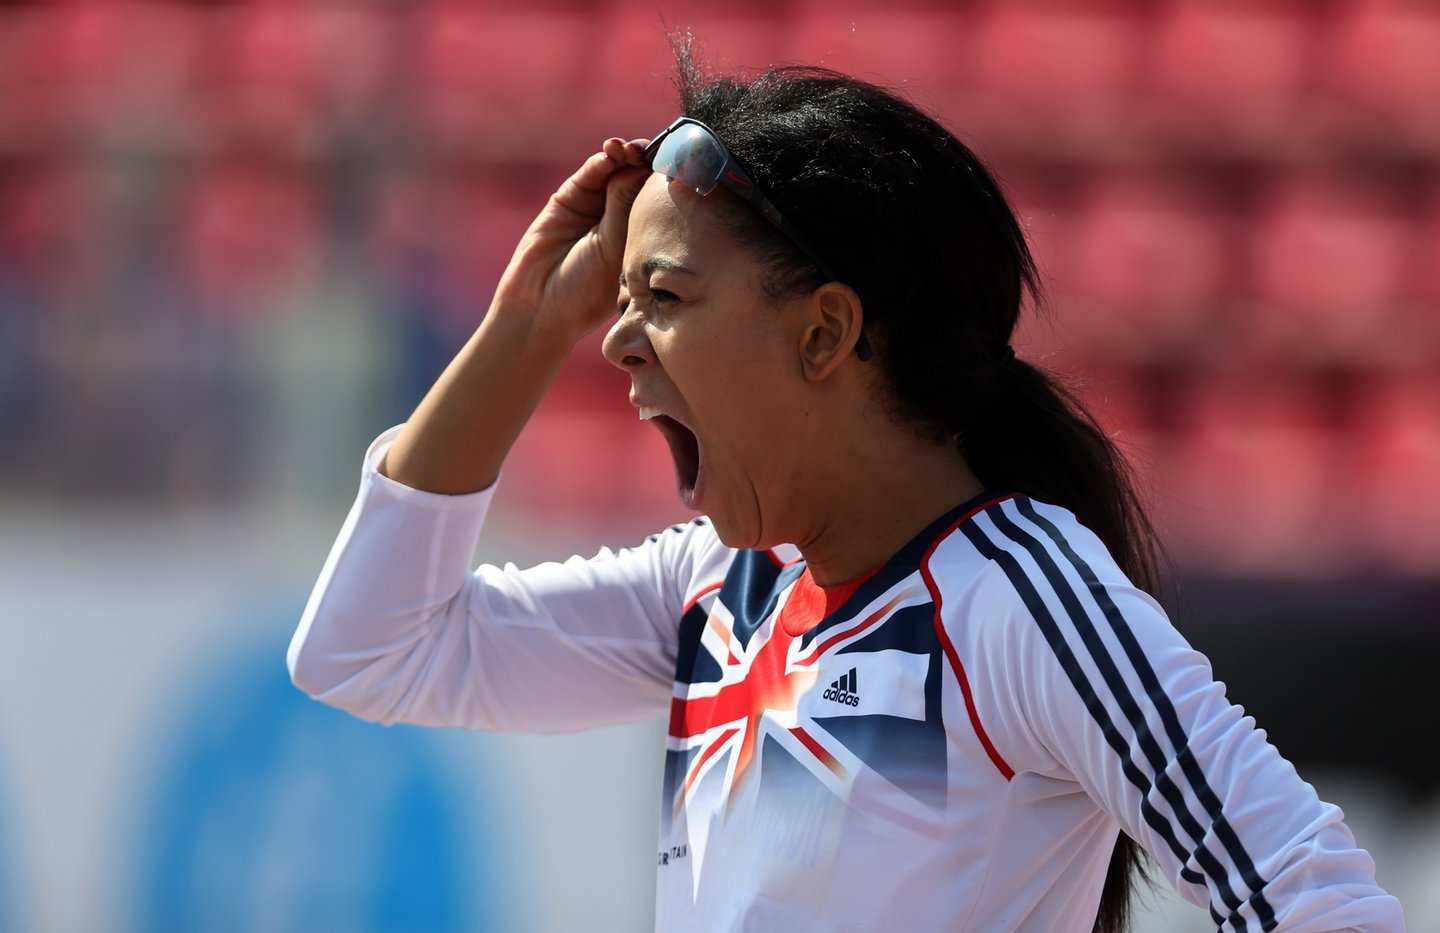 TAMPERE, FINLAND - JULY 13:  Katarina Johnson-Thompson of Great Britain yawns as she waits to competes in the High Jump during The Heptathlon during day three of The European Athletics U23 Championships 2013 on July 13, 2013 in Tampere, Finland. (Photo by Ian MacNicol/Getty Images)